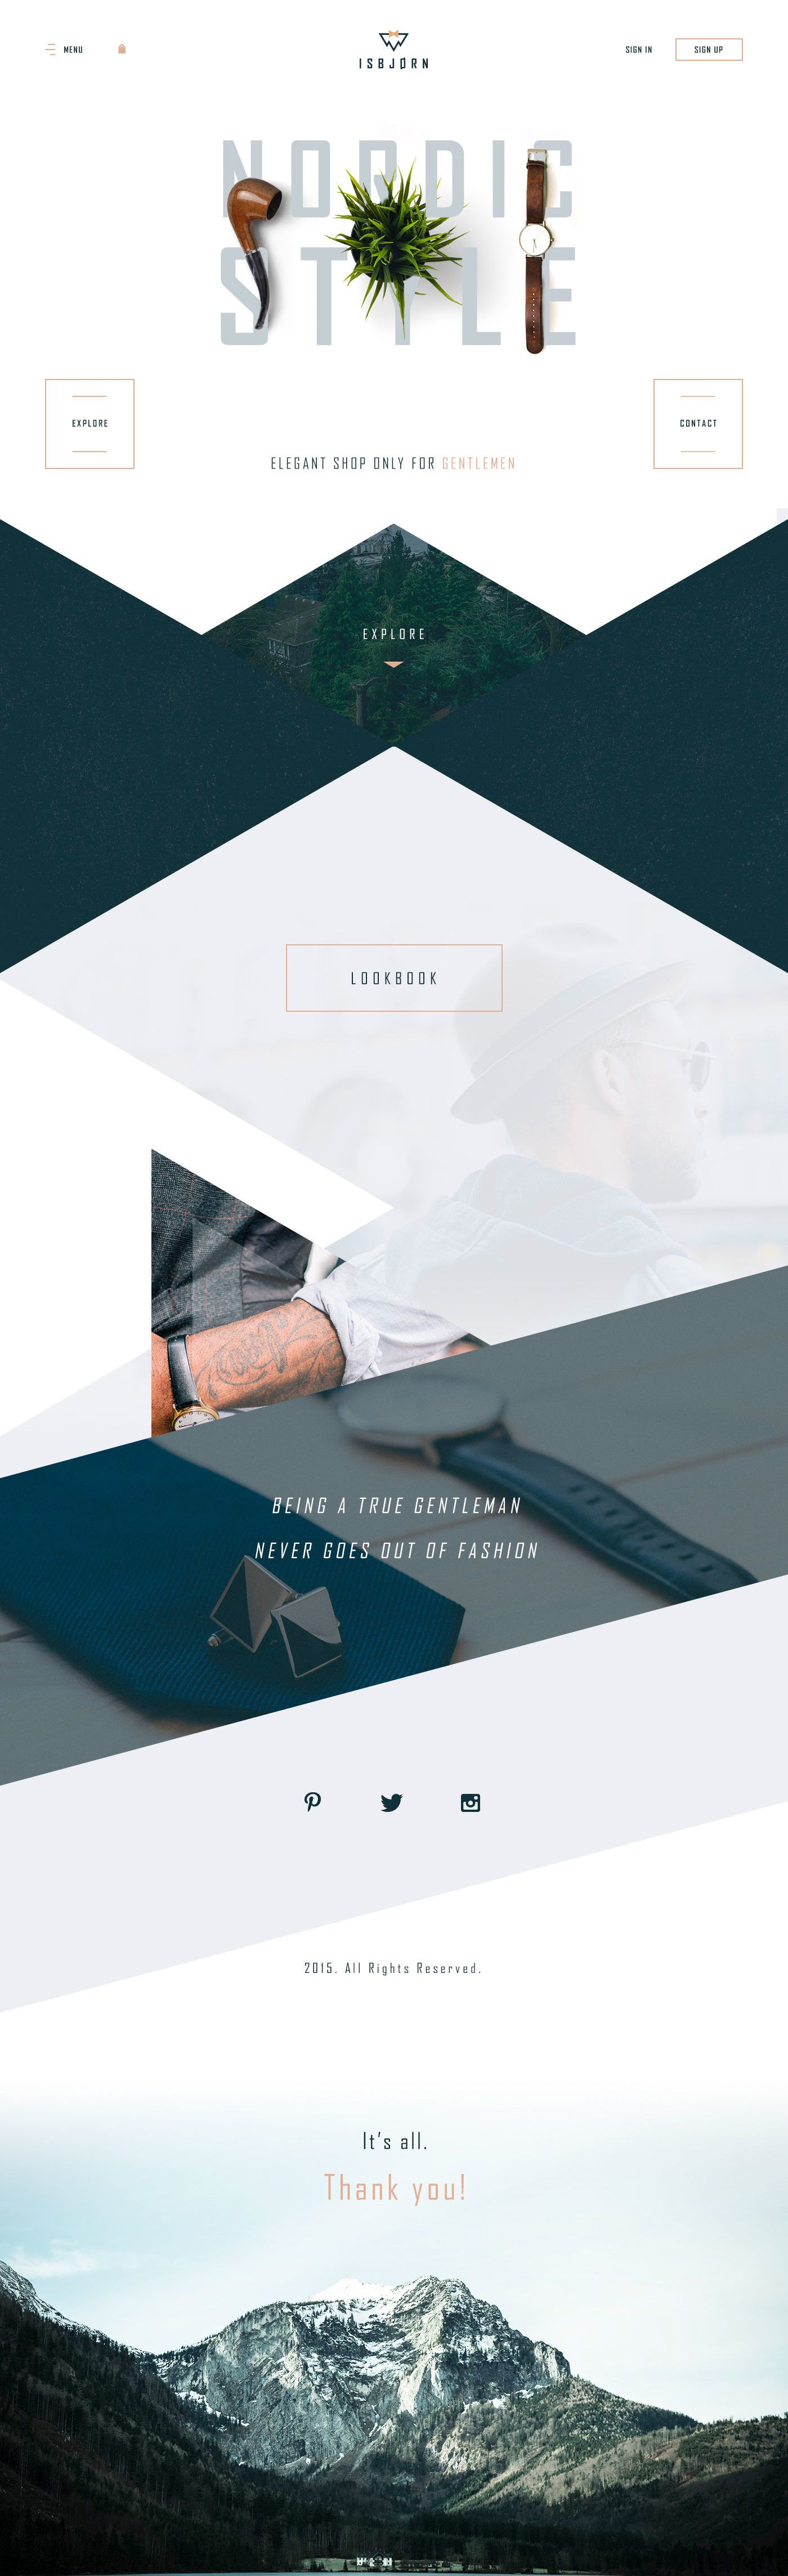 Web Design Inspiration 2021 8 Gorgeous New Examples Web Design Inspiration Design Inspiration Web Design